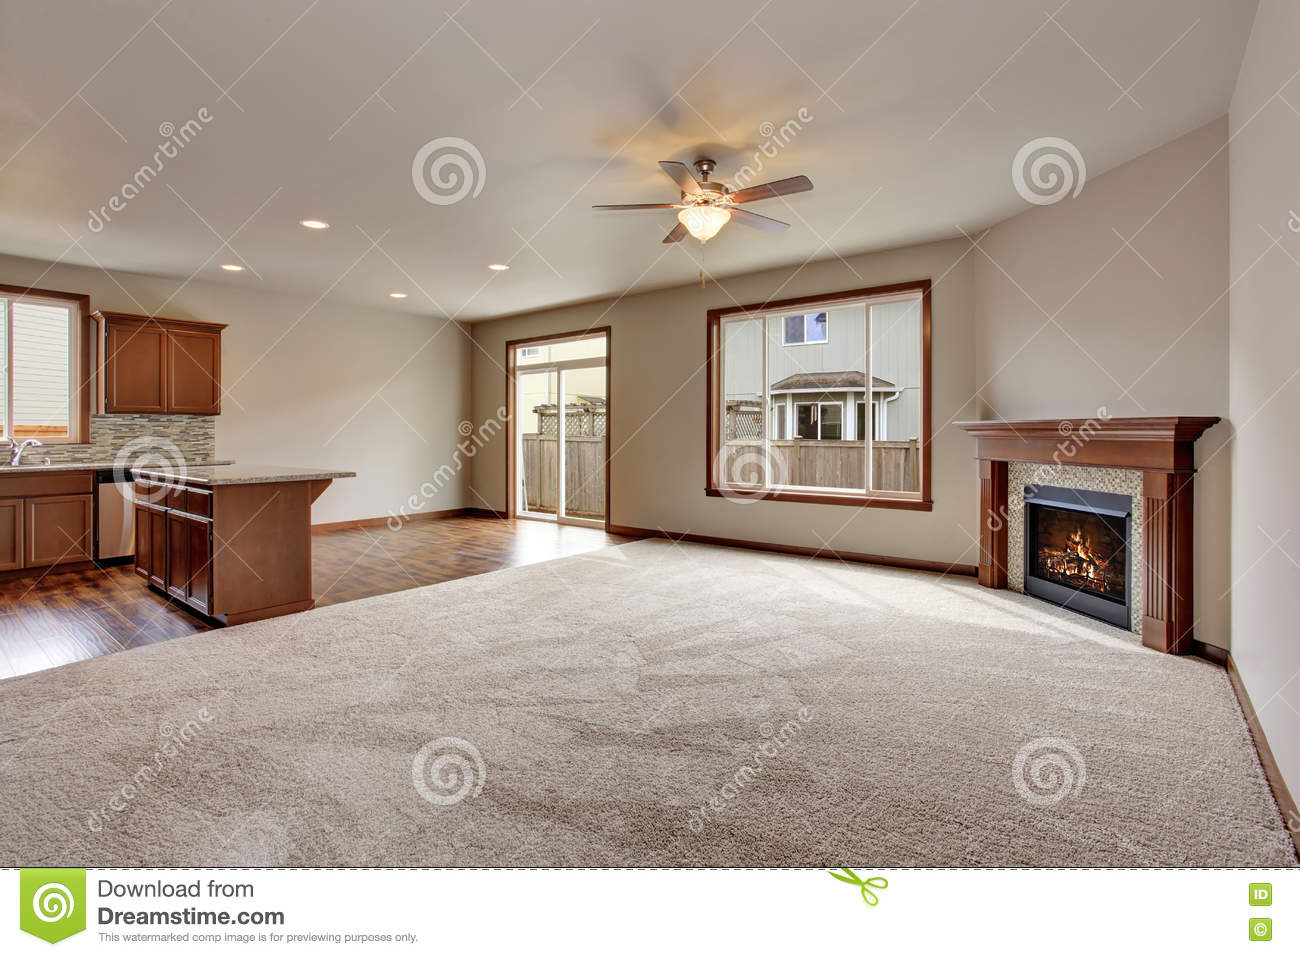 large empty living room interior with carpet floor and